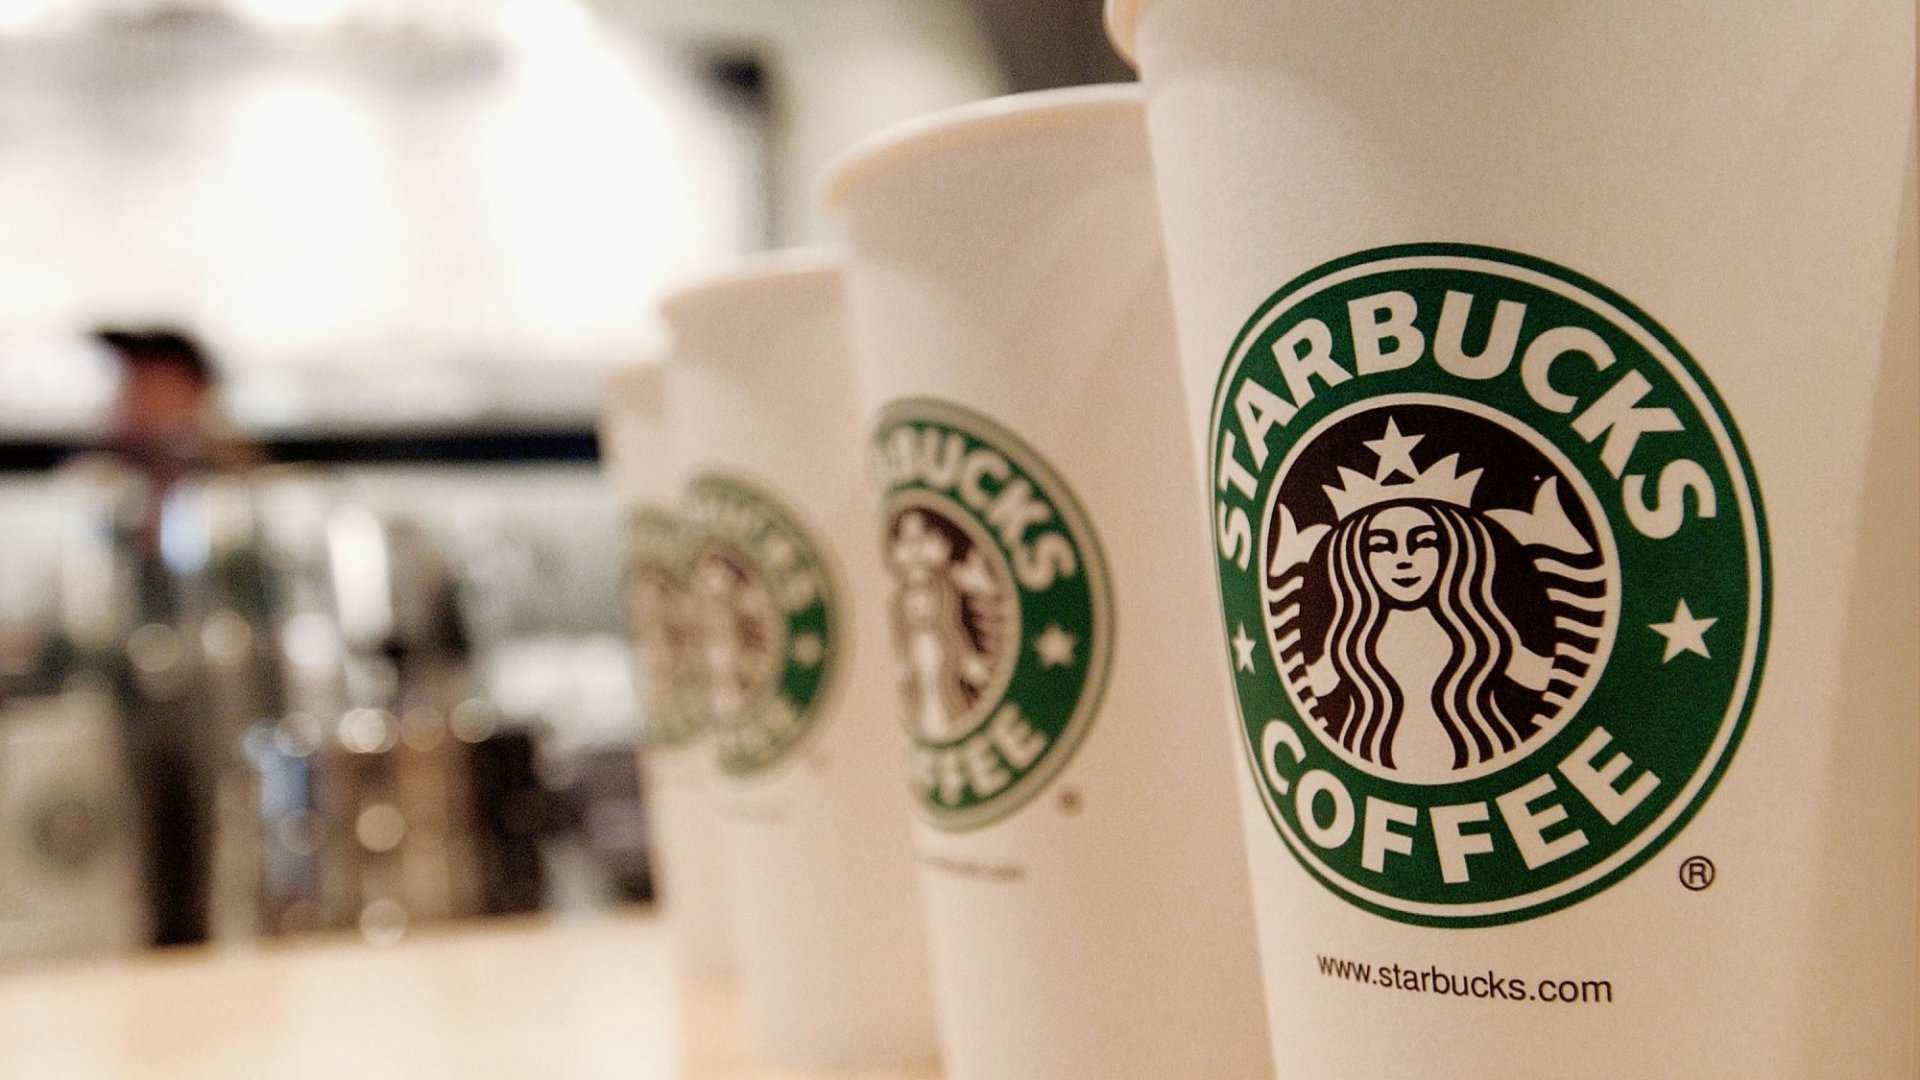 How 'Harry Potter' Fans Turned the New Starbucks 'Butterbeer' Latte into Marketing Magic